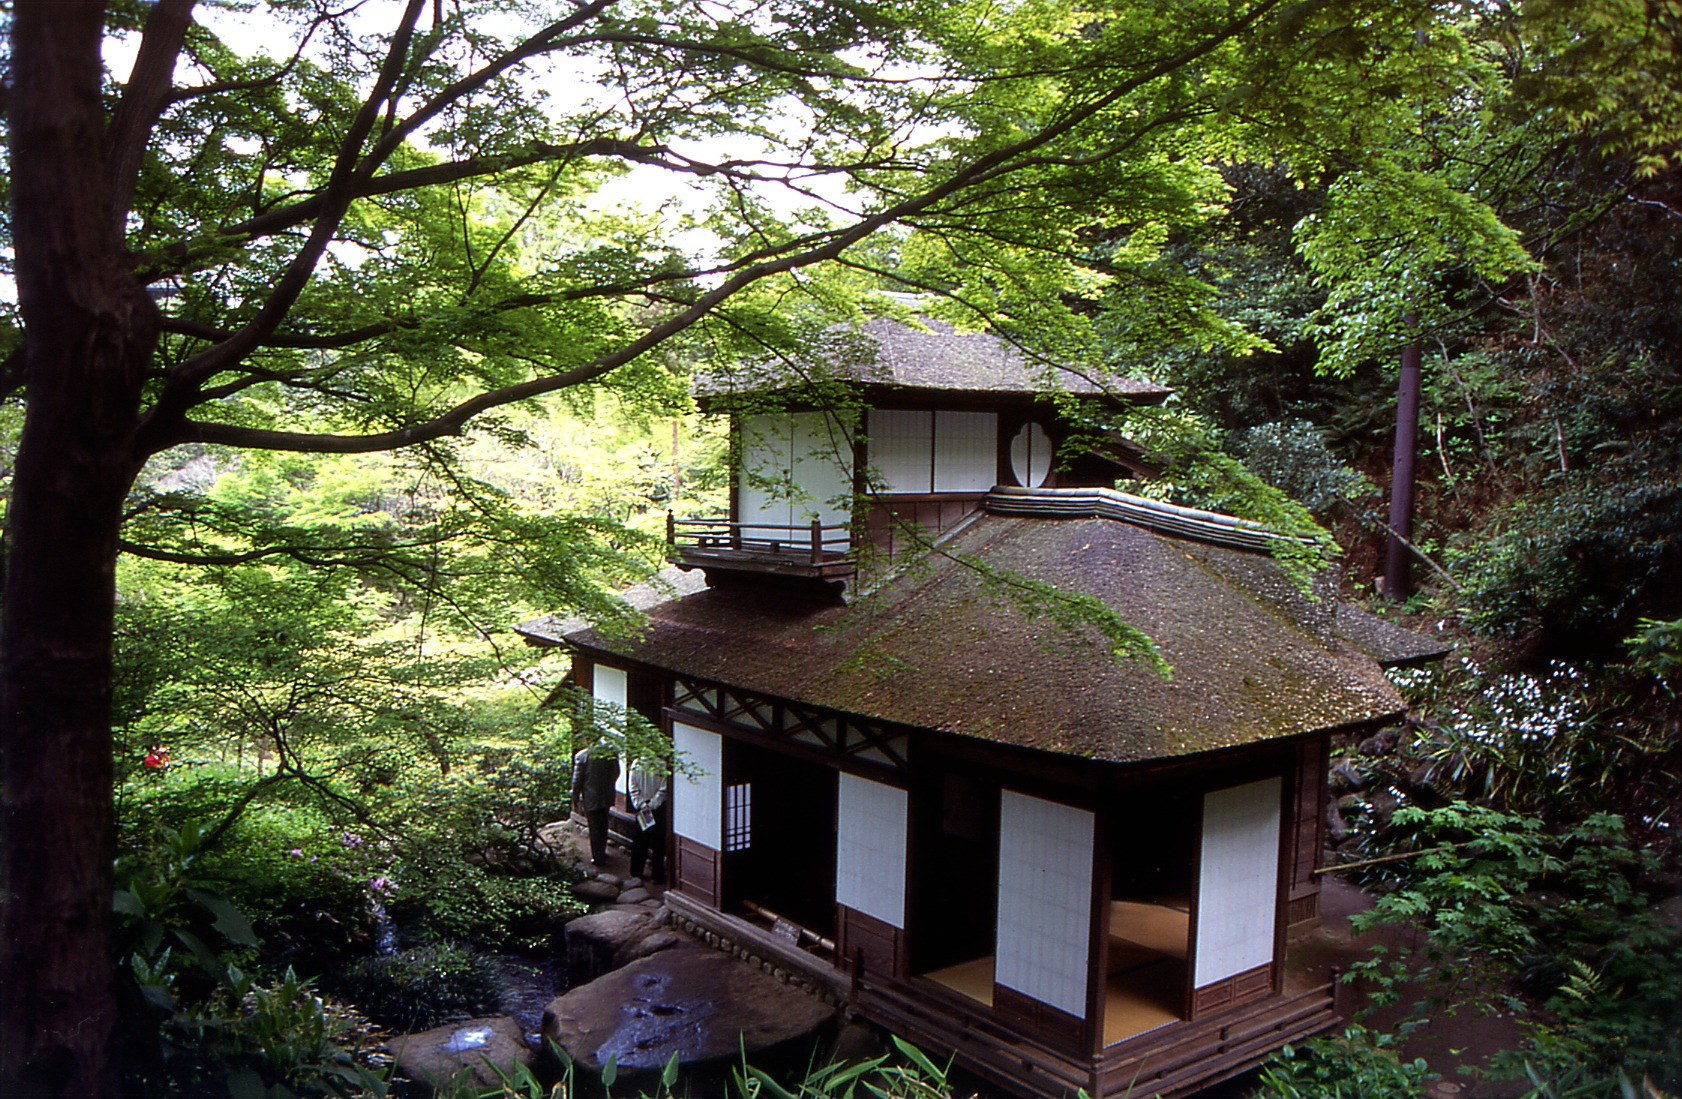 Historical buildings to open to the public in the spring (Shunsoro and Choshukaku, important cultural assets) 2019